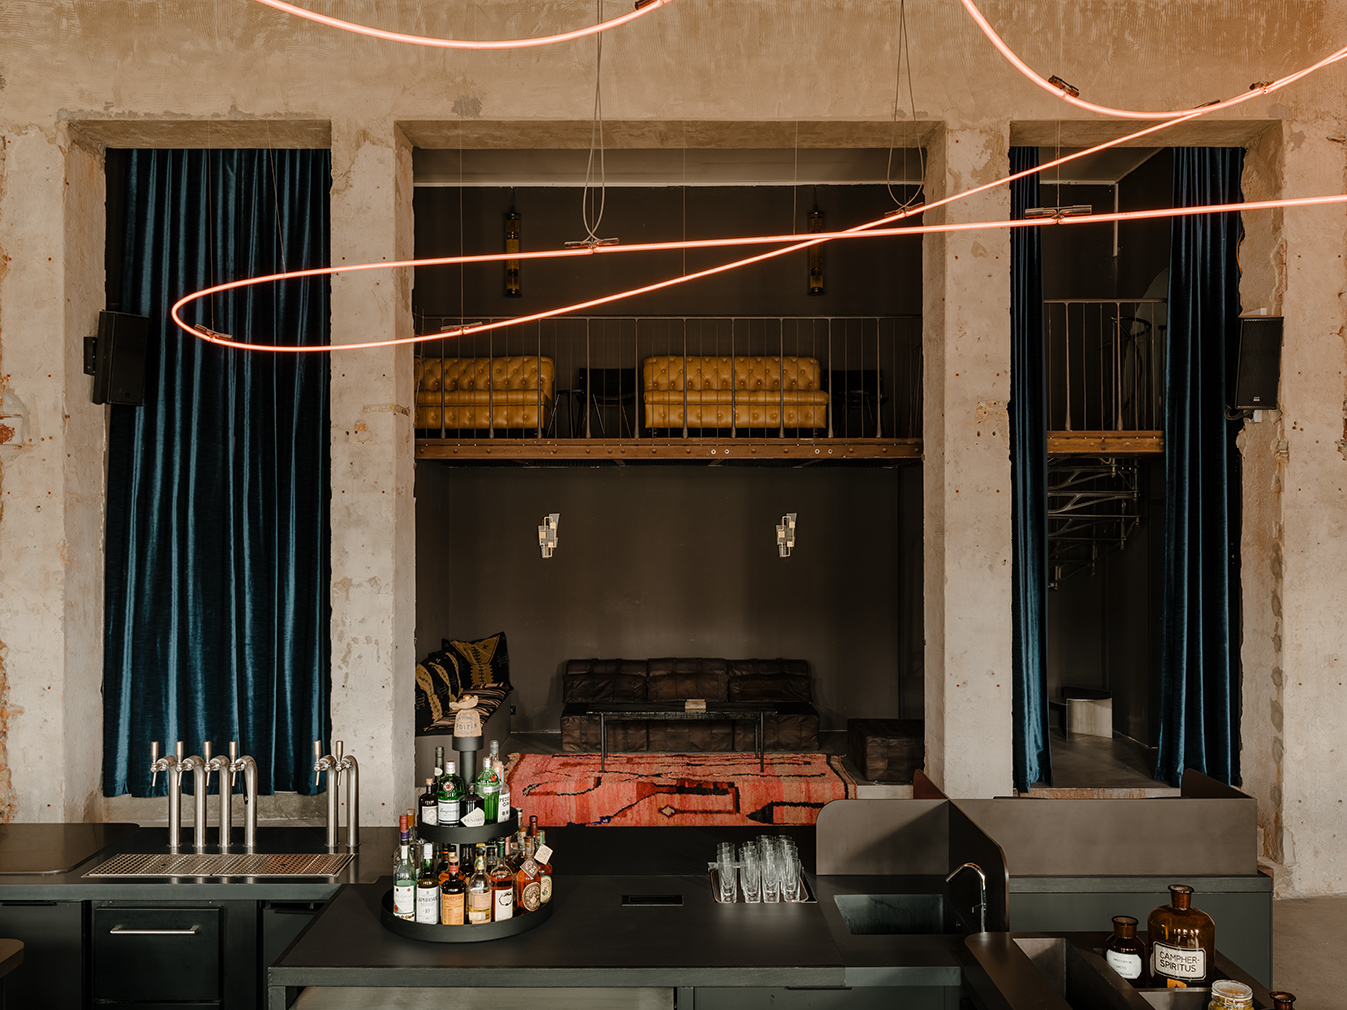 Kink bar in Berlin. The former brewery complex is now home to a moody and industrial inspired bar named Kink. Plaster and brick are contrasted by heavy velvet drapes, colourful floor cushions and a collection of art including a 100-ft-long neon rope installation by Kerim Seiler